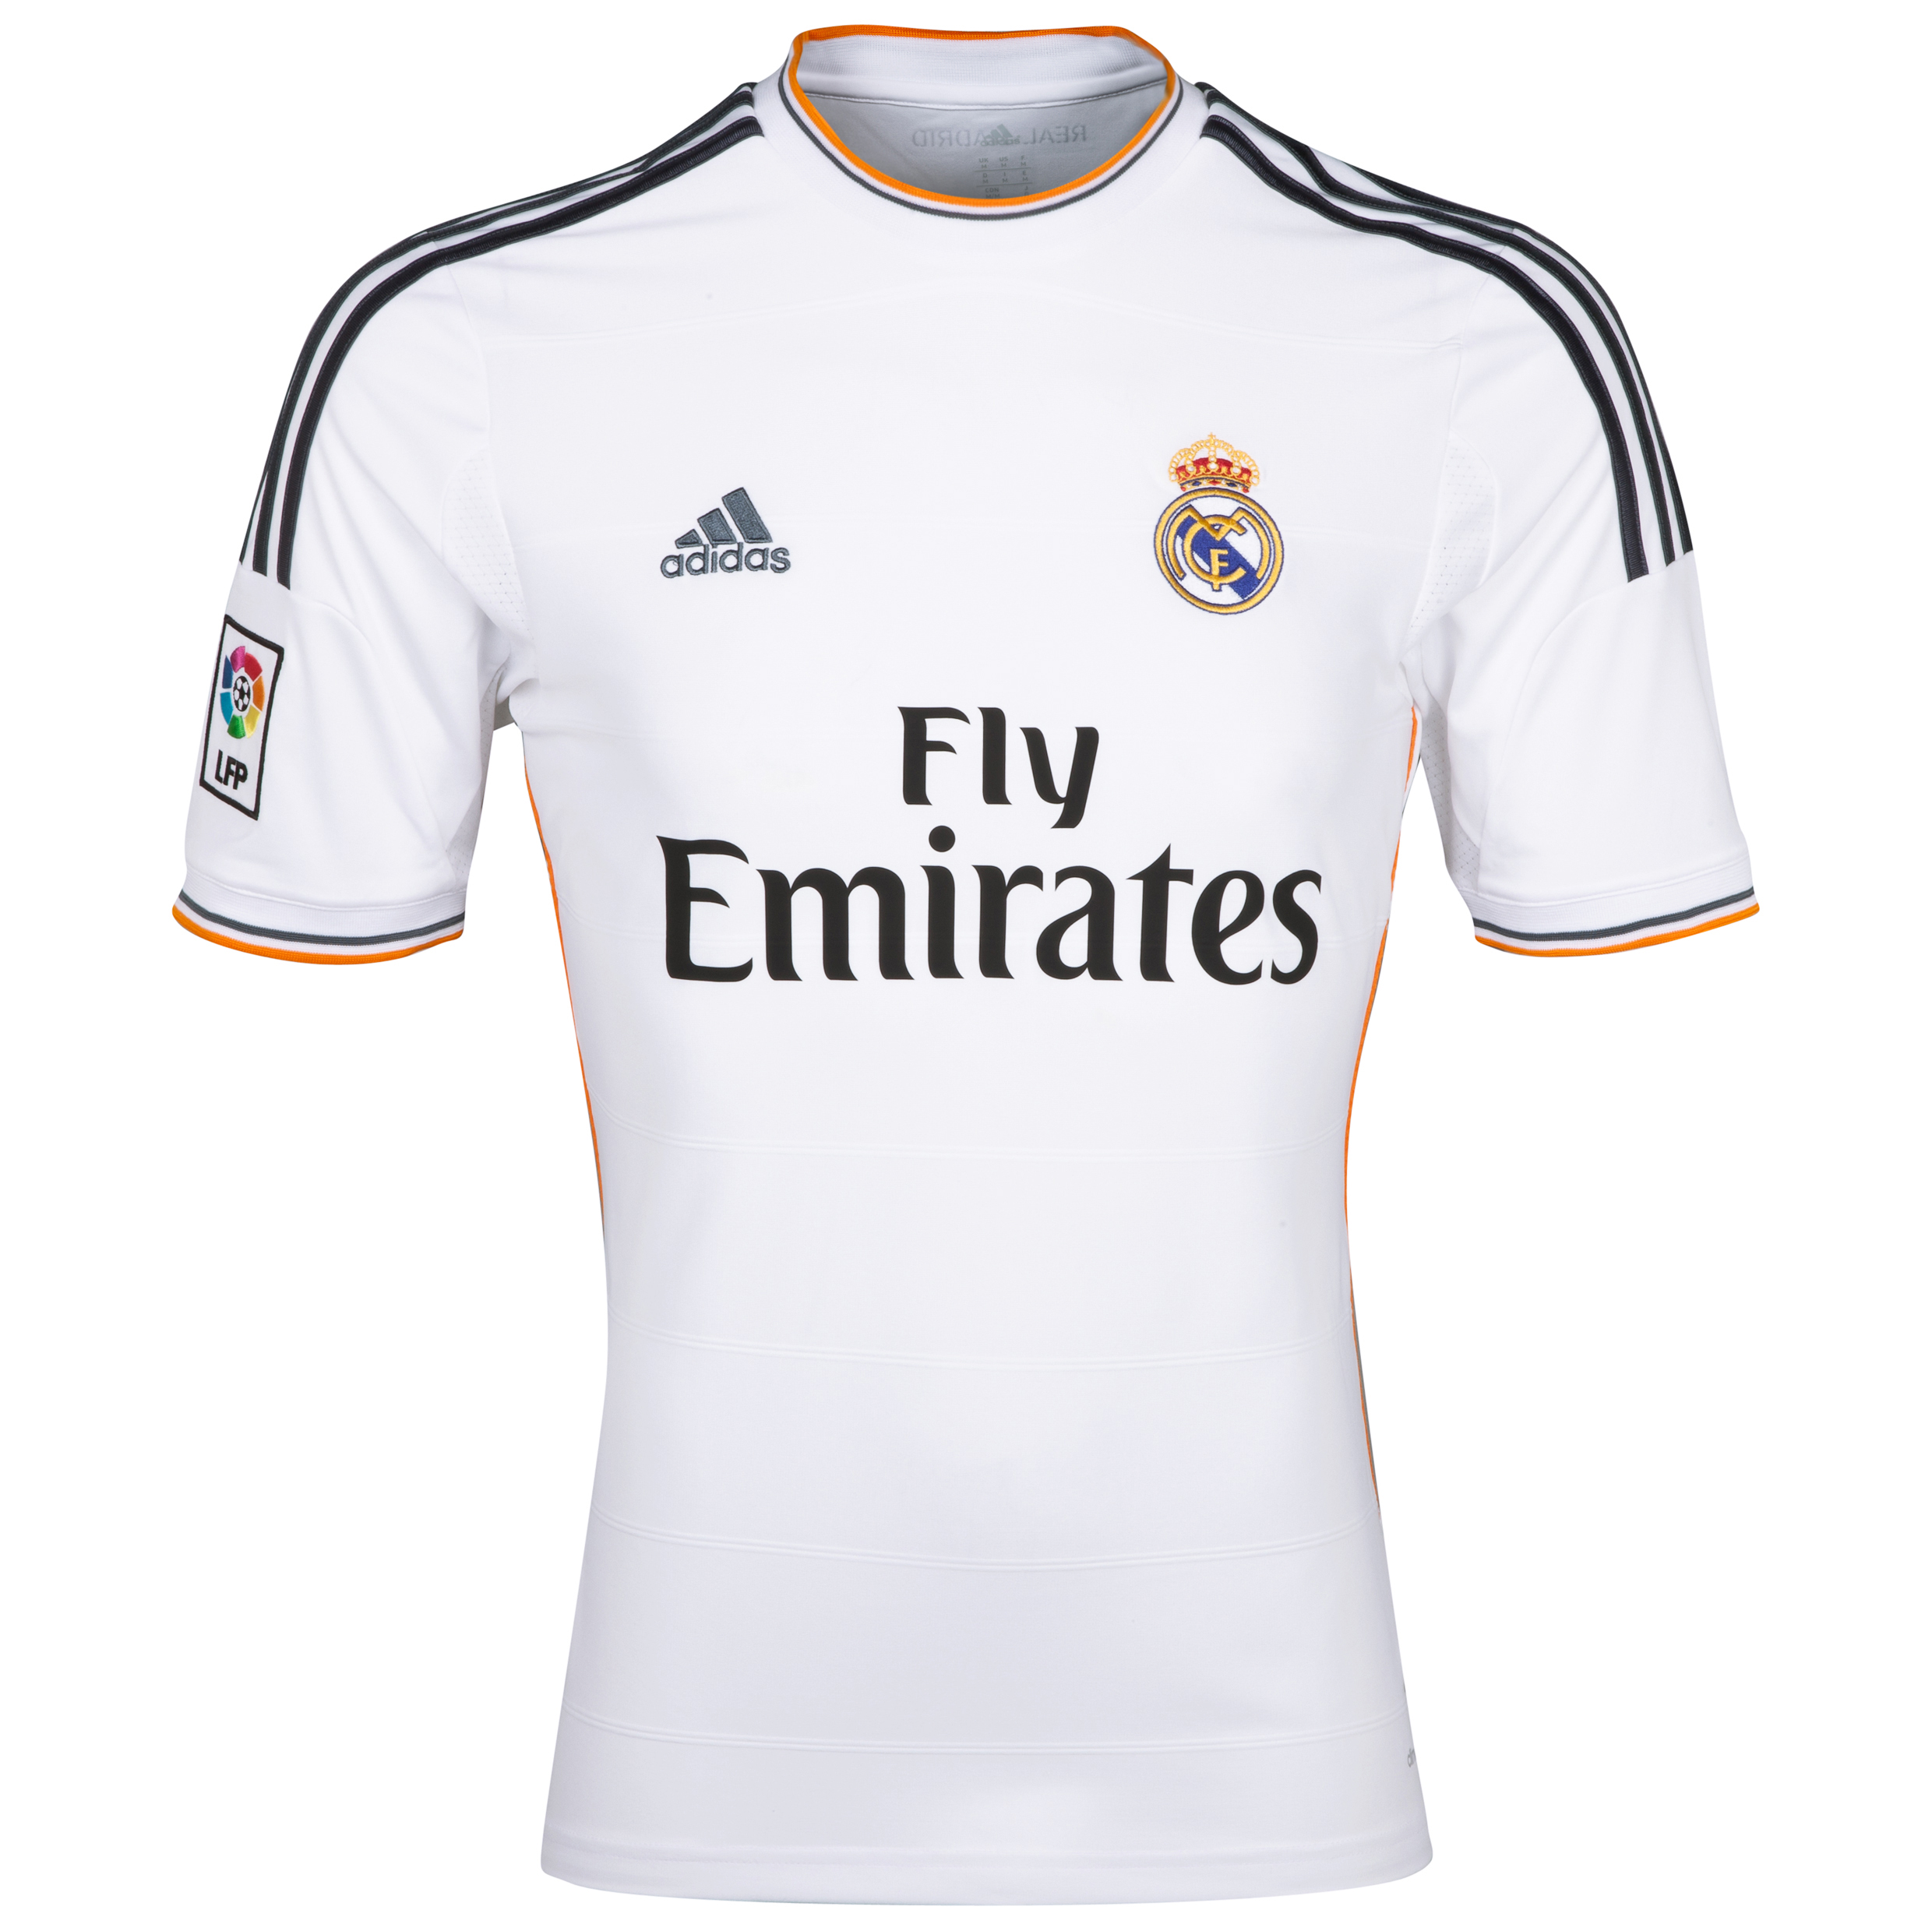 Real Madrid Home Shirt 2013/14